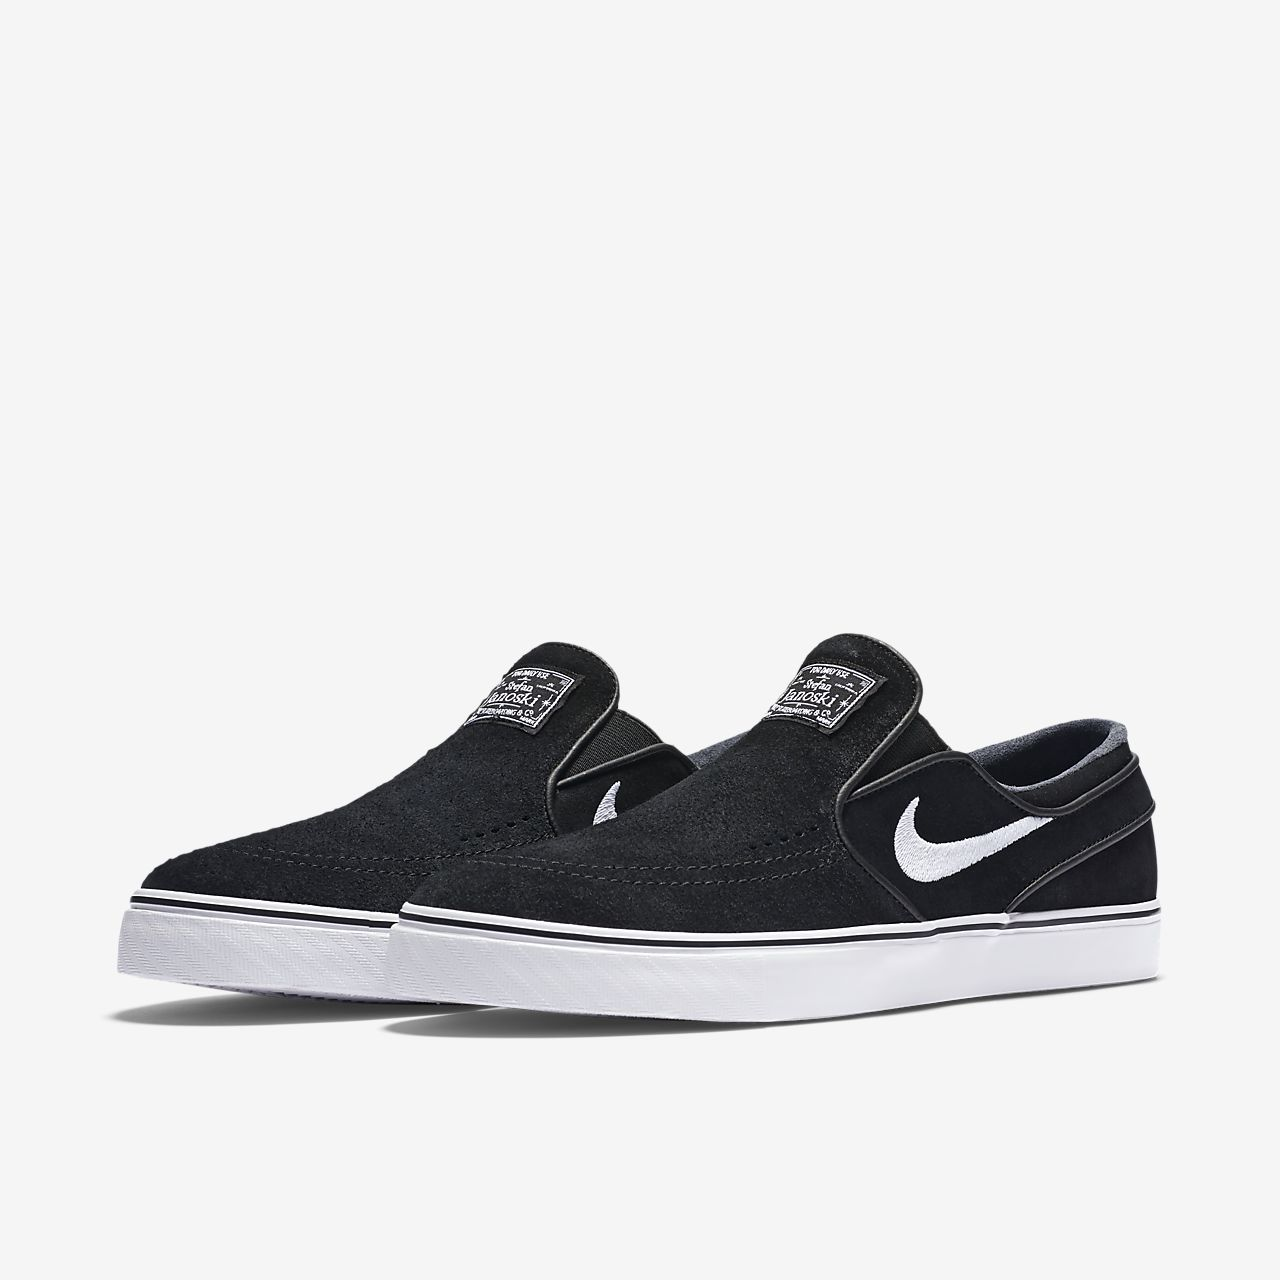 64667004b8 Nike SB Zoom Stefan Janoski Slip-On Men s Skateboarding Shoe. Nike.com